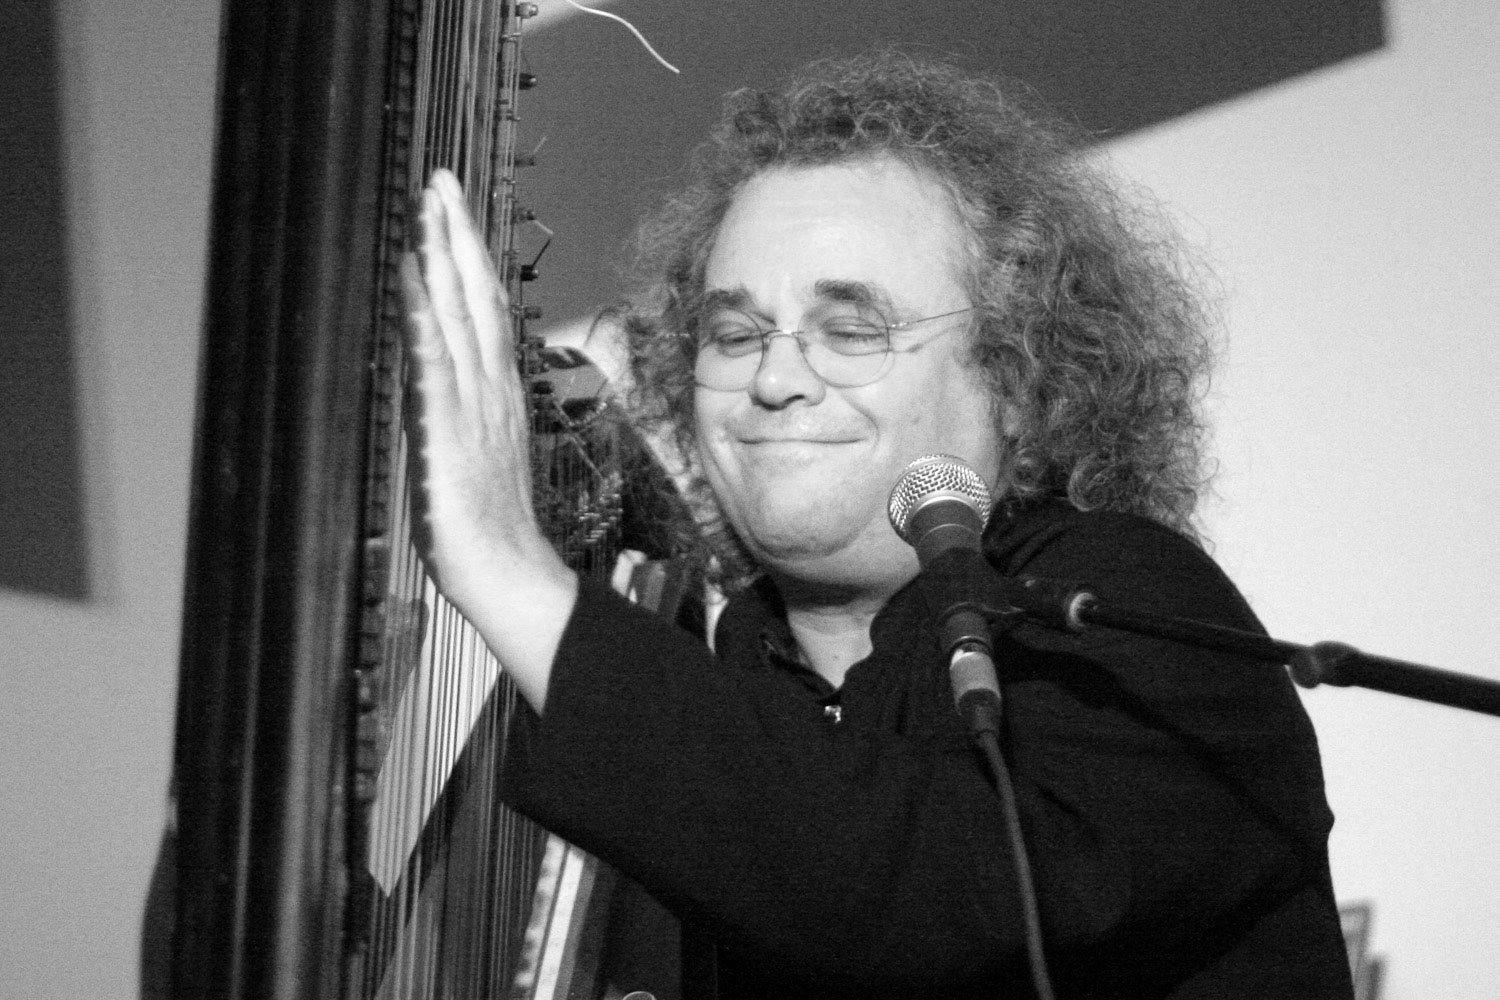 Andreas Vollenweider plays the harp at live performance for KINK.FM radio.